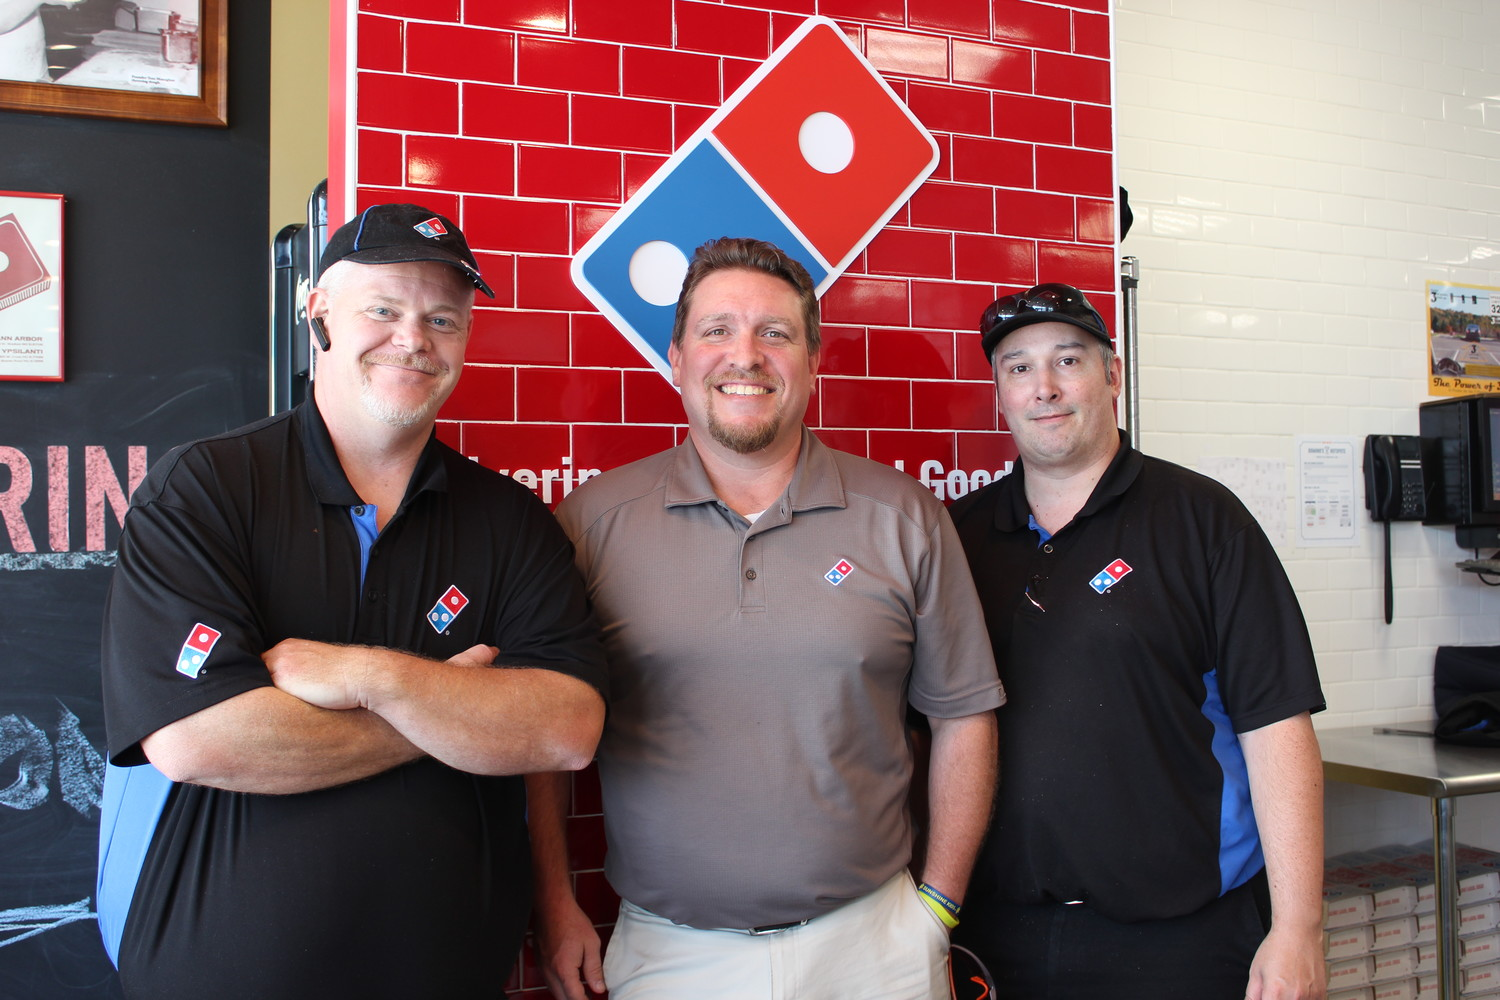 Domino's chef Anthony Walters, (left) franchisee Ike Coronis (middle) and driver Jason Sirak stand together at the Domino's pizza theater restaurant in Jonestown.